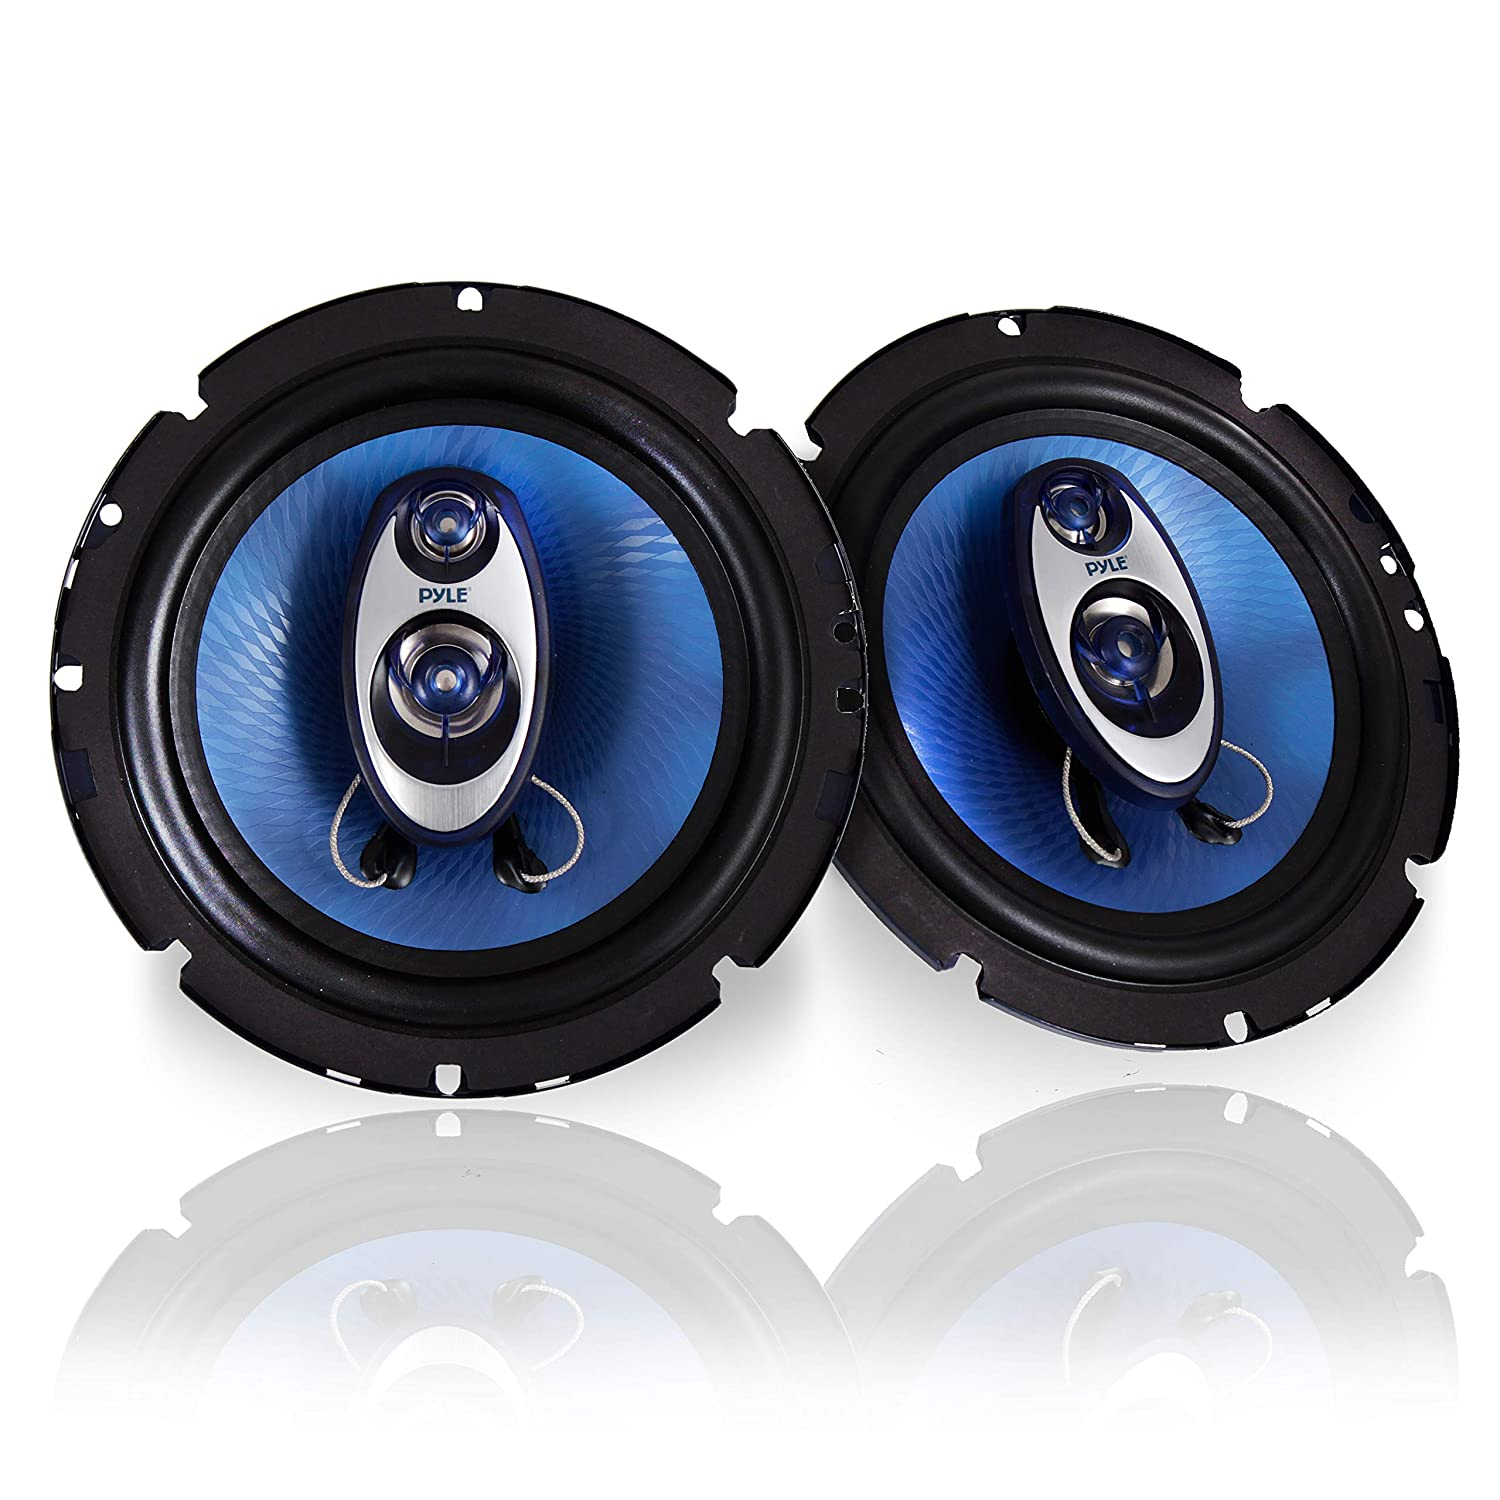 Pyle 6.5'' Three Way Sound Speaker System - Round Shaped Pro Full Range Triaxial Loud Audio 360 Watt Per Pairw/ 4 Ohm Impedance and 3/4'' Piezo Tweeter for Car Component Stereo PL63BL